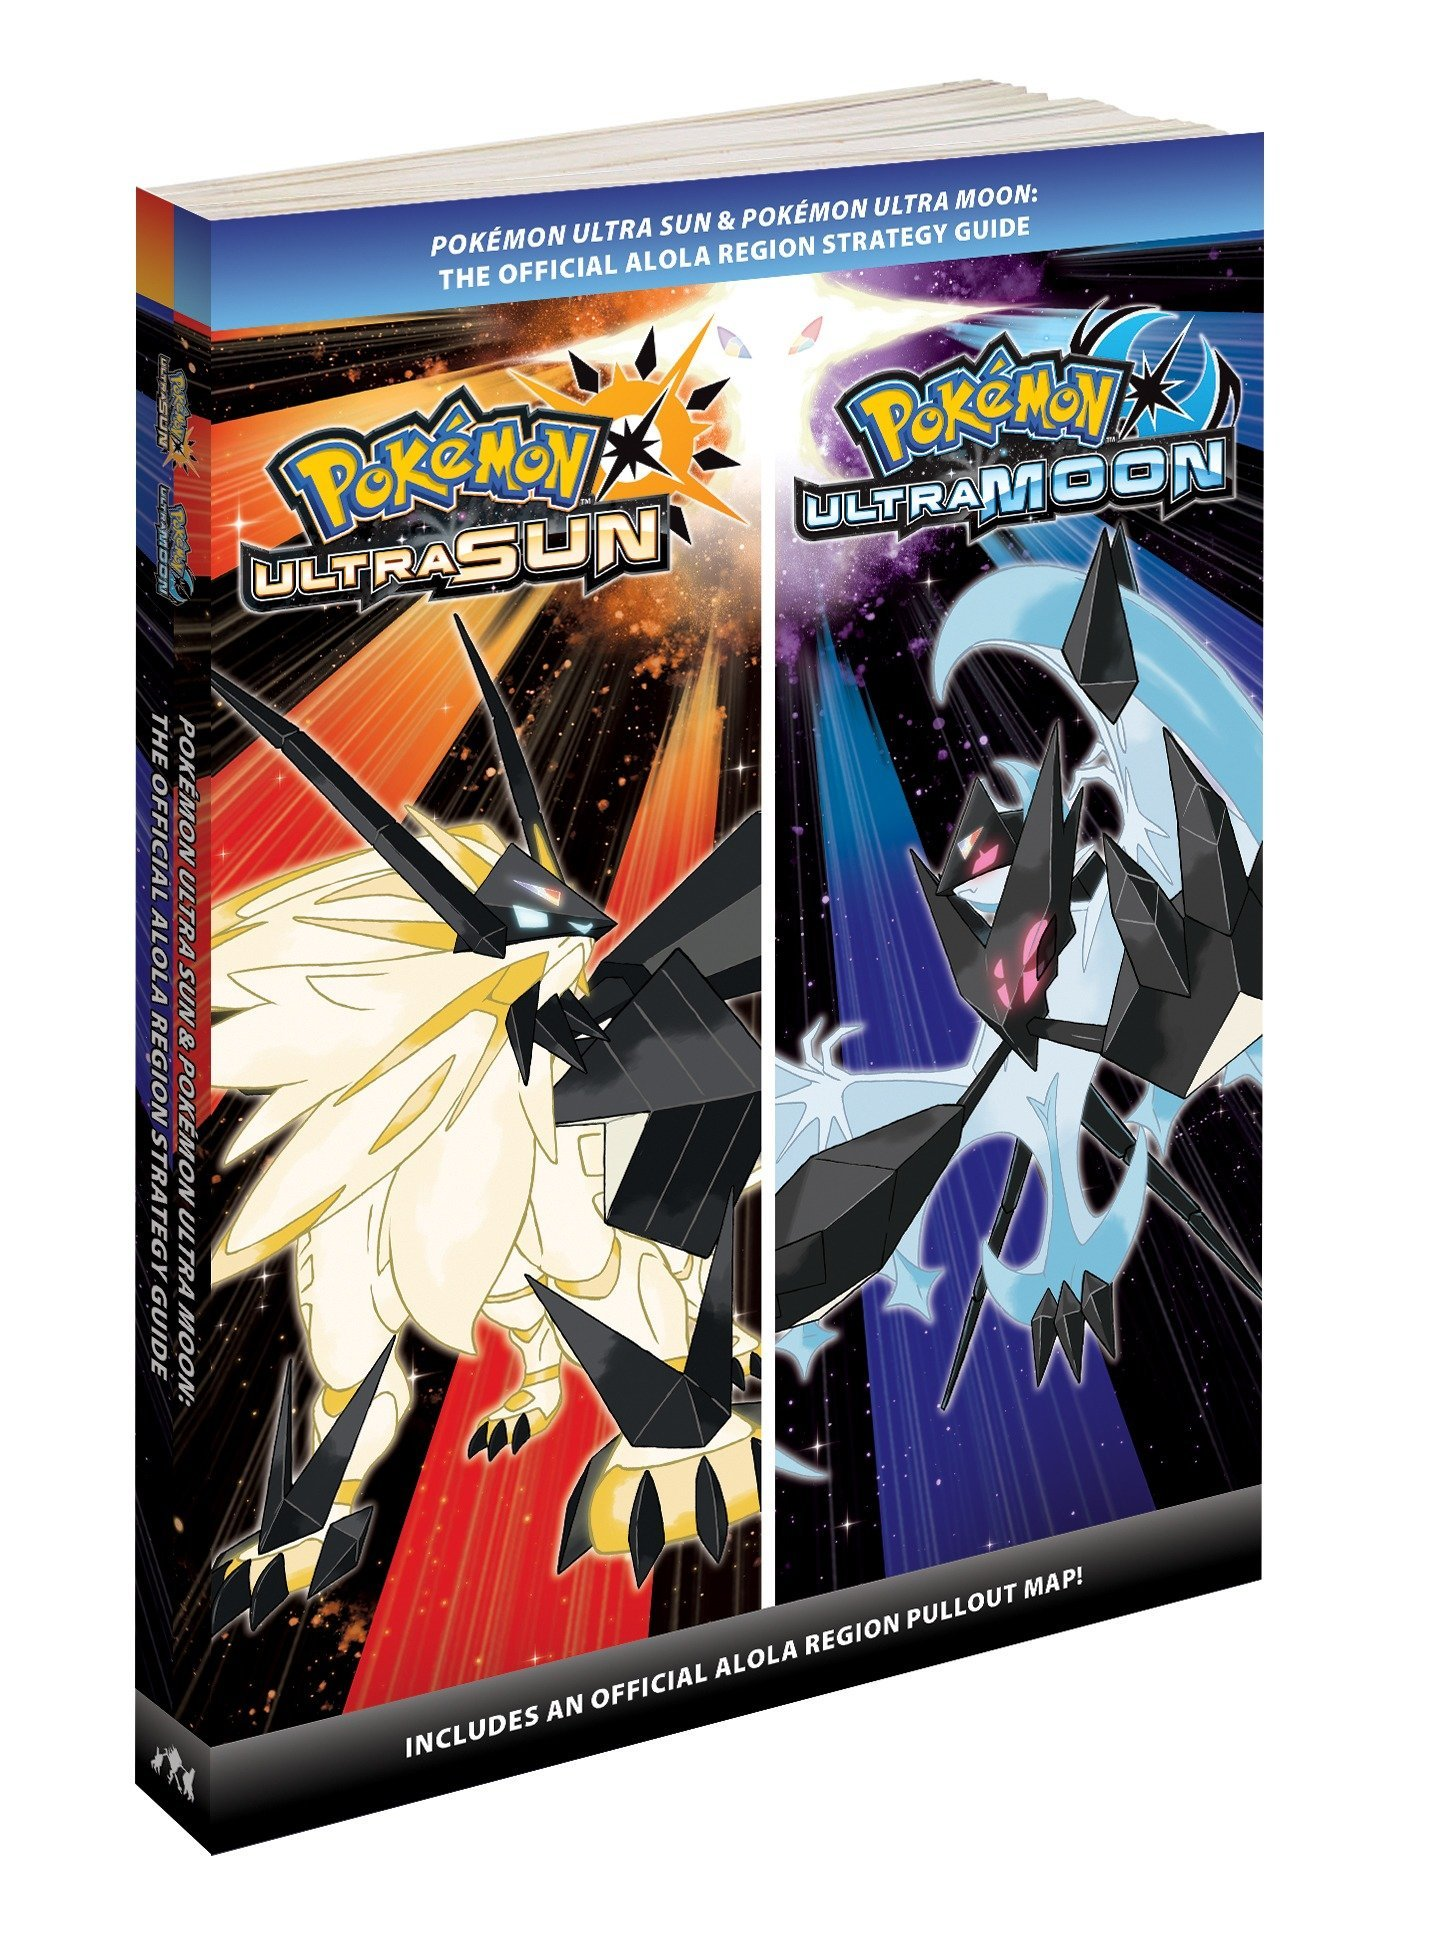 Pokémon Ultra Sun & Pokémon Ultra Moon: The Official Alola Region Strategy Guide (Pokemon (Prima Official Guide/Official Pokedex Guide))